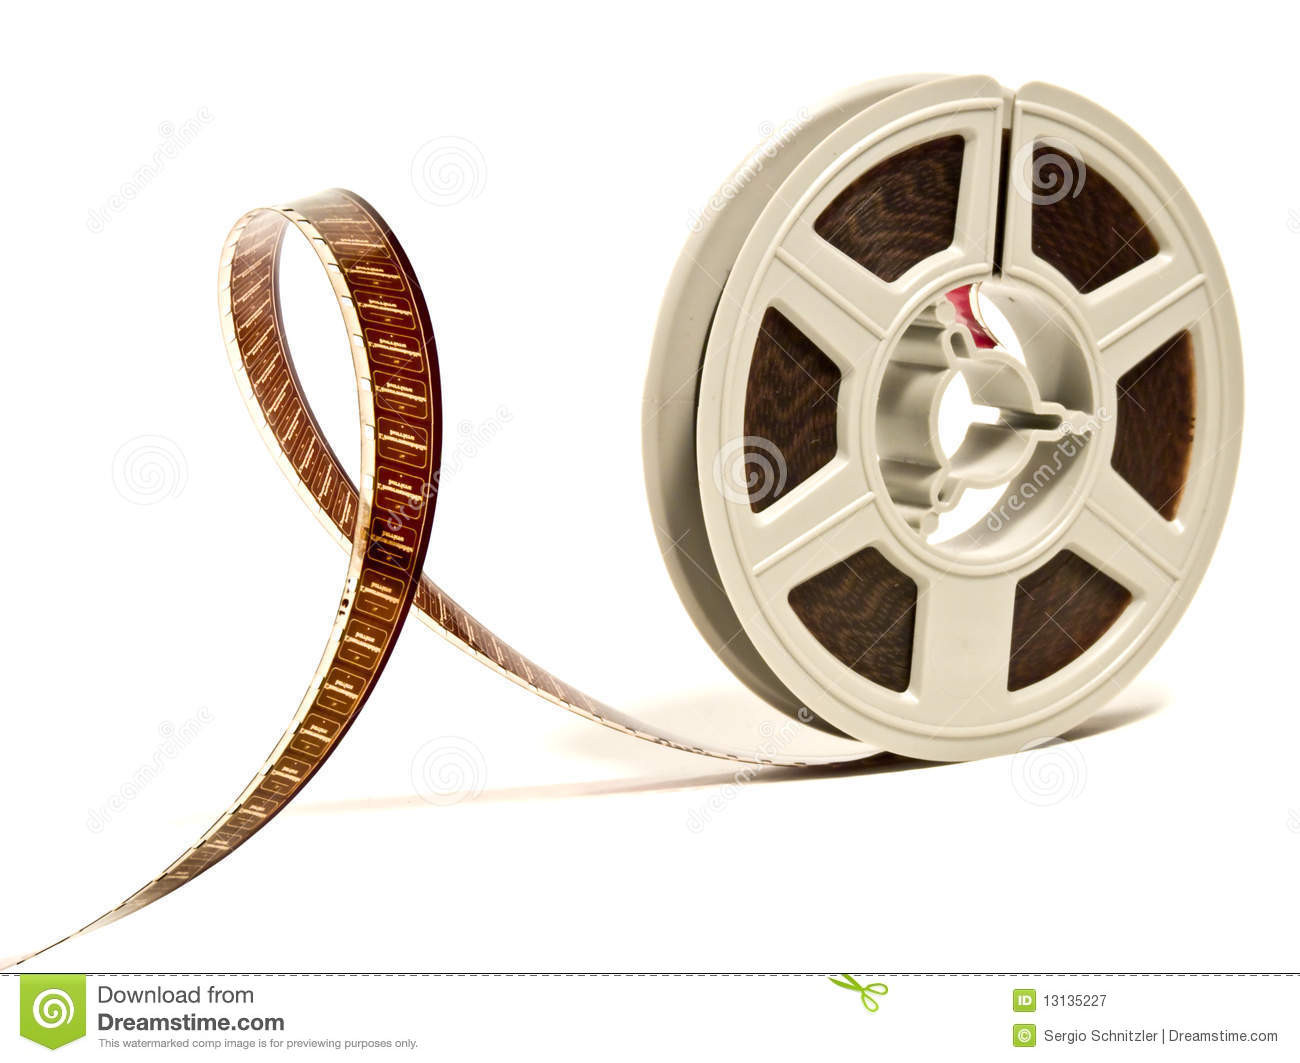 Super 8 color film reel stock image image of celluloid 13135227 royalty free stock photo altavistaventures Images